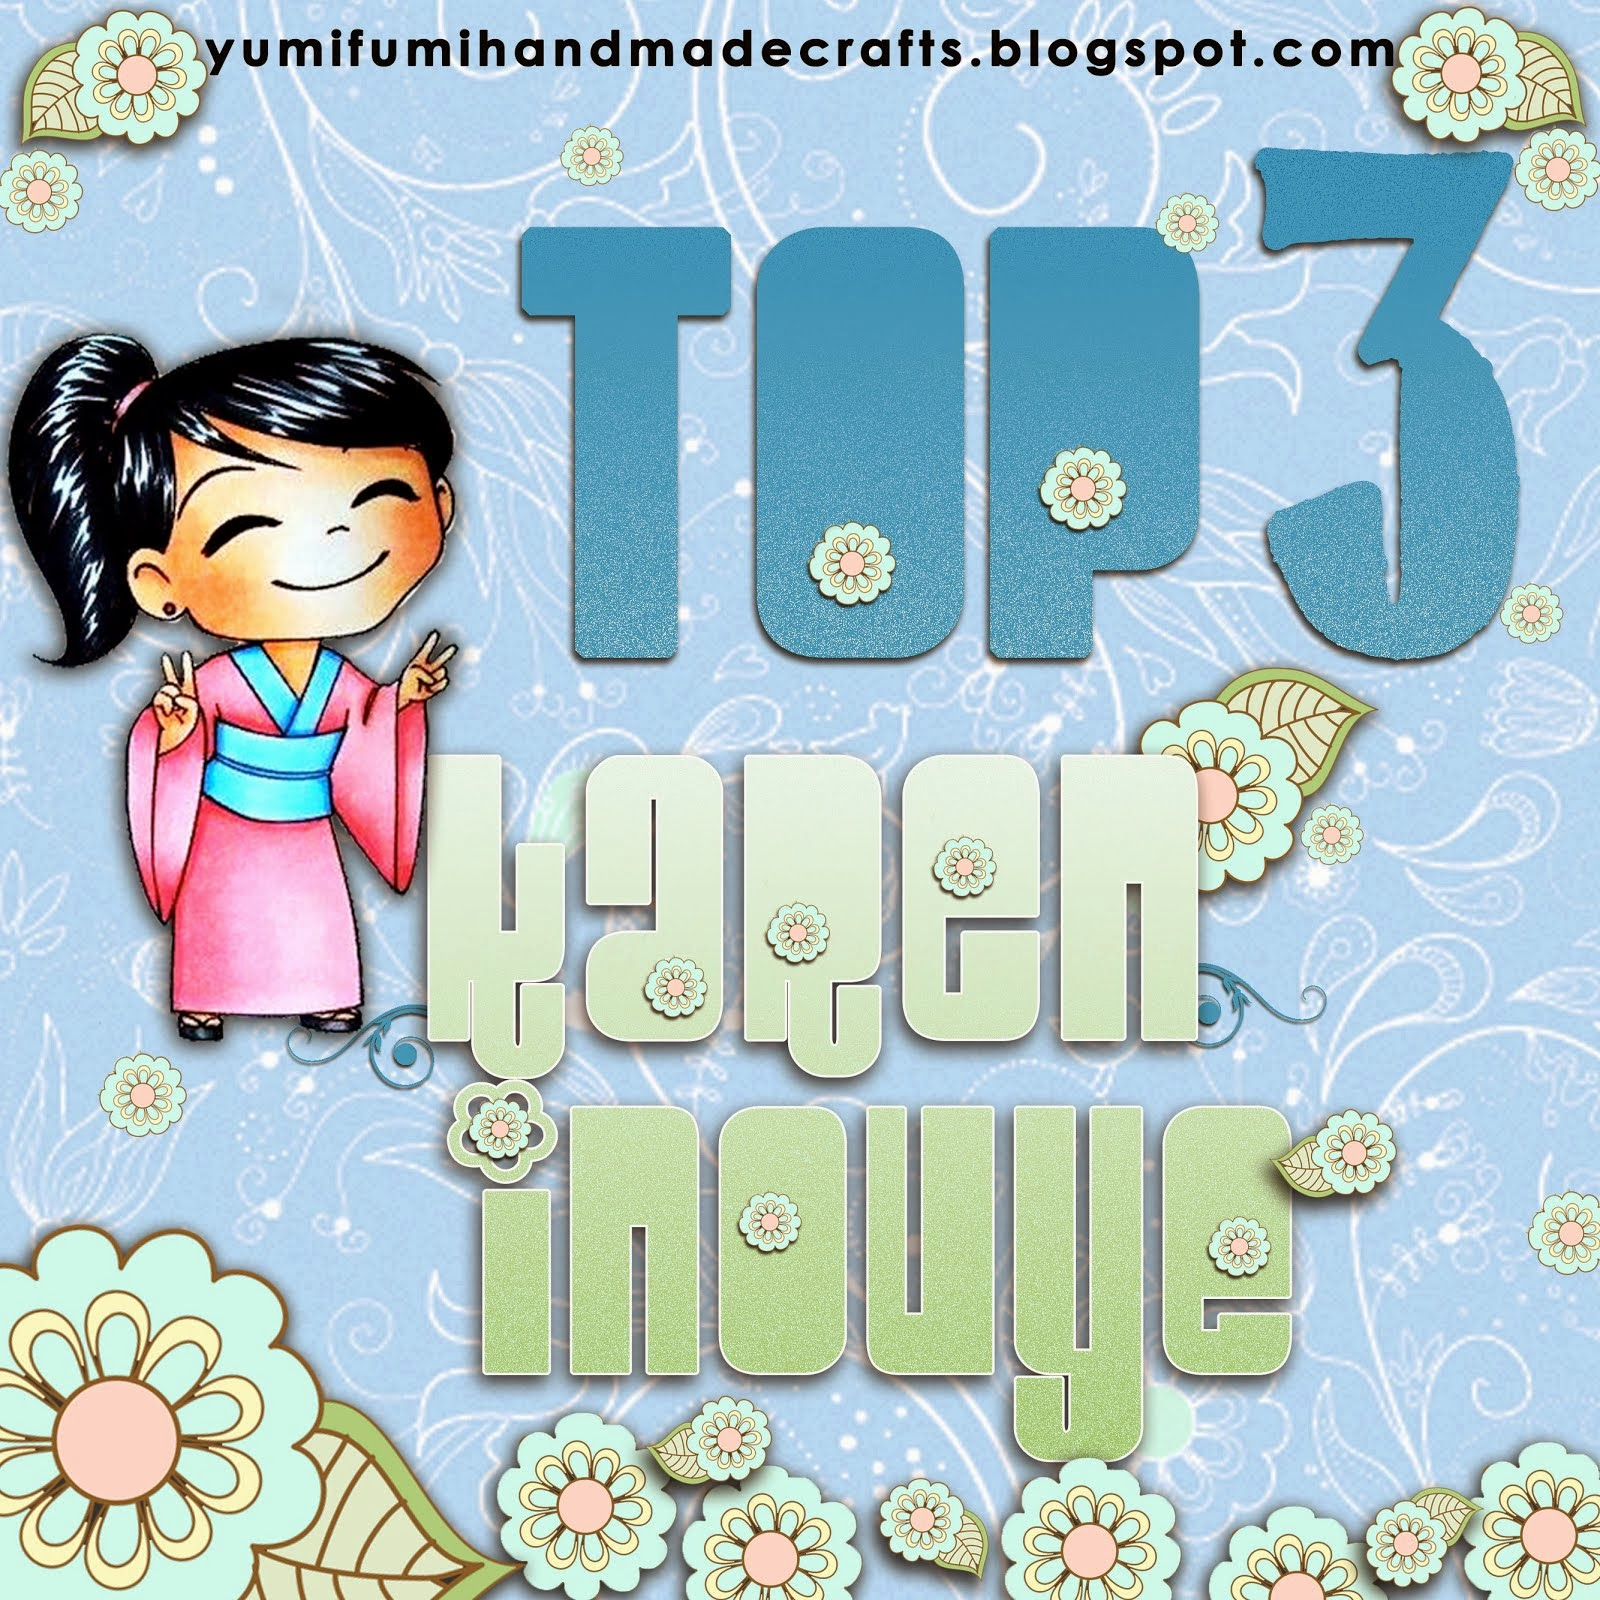 Yay, I made Top 3 on Yumi and Fumi Handmade